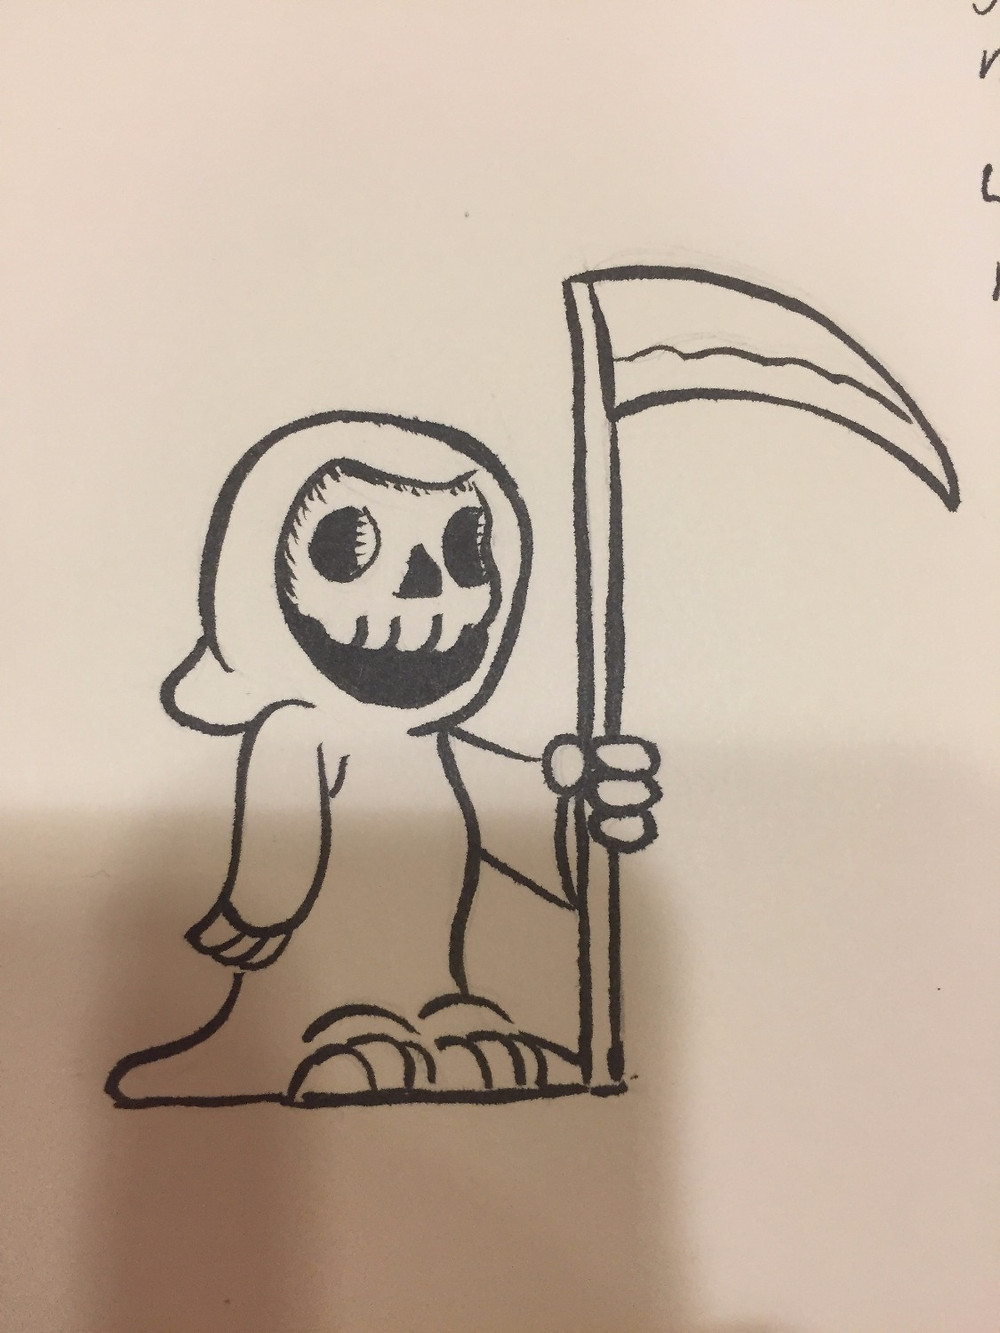 A doodle of a friendly Death